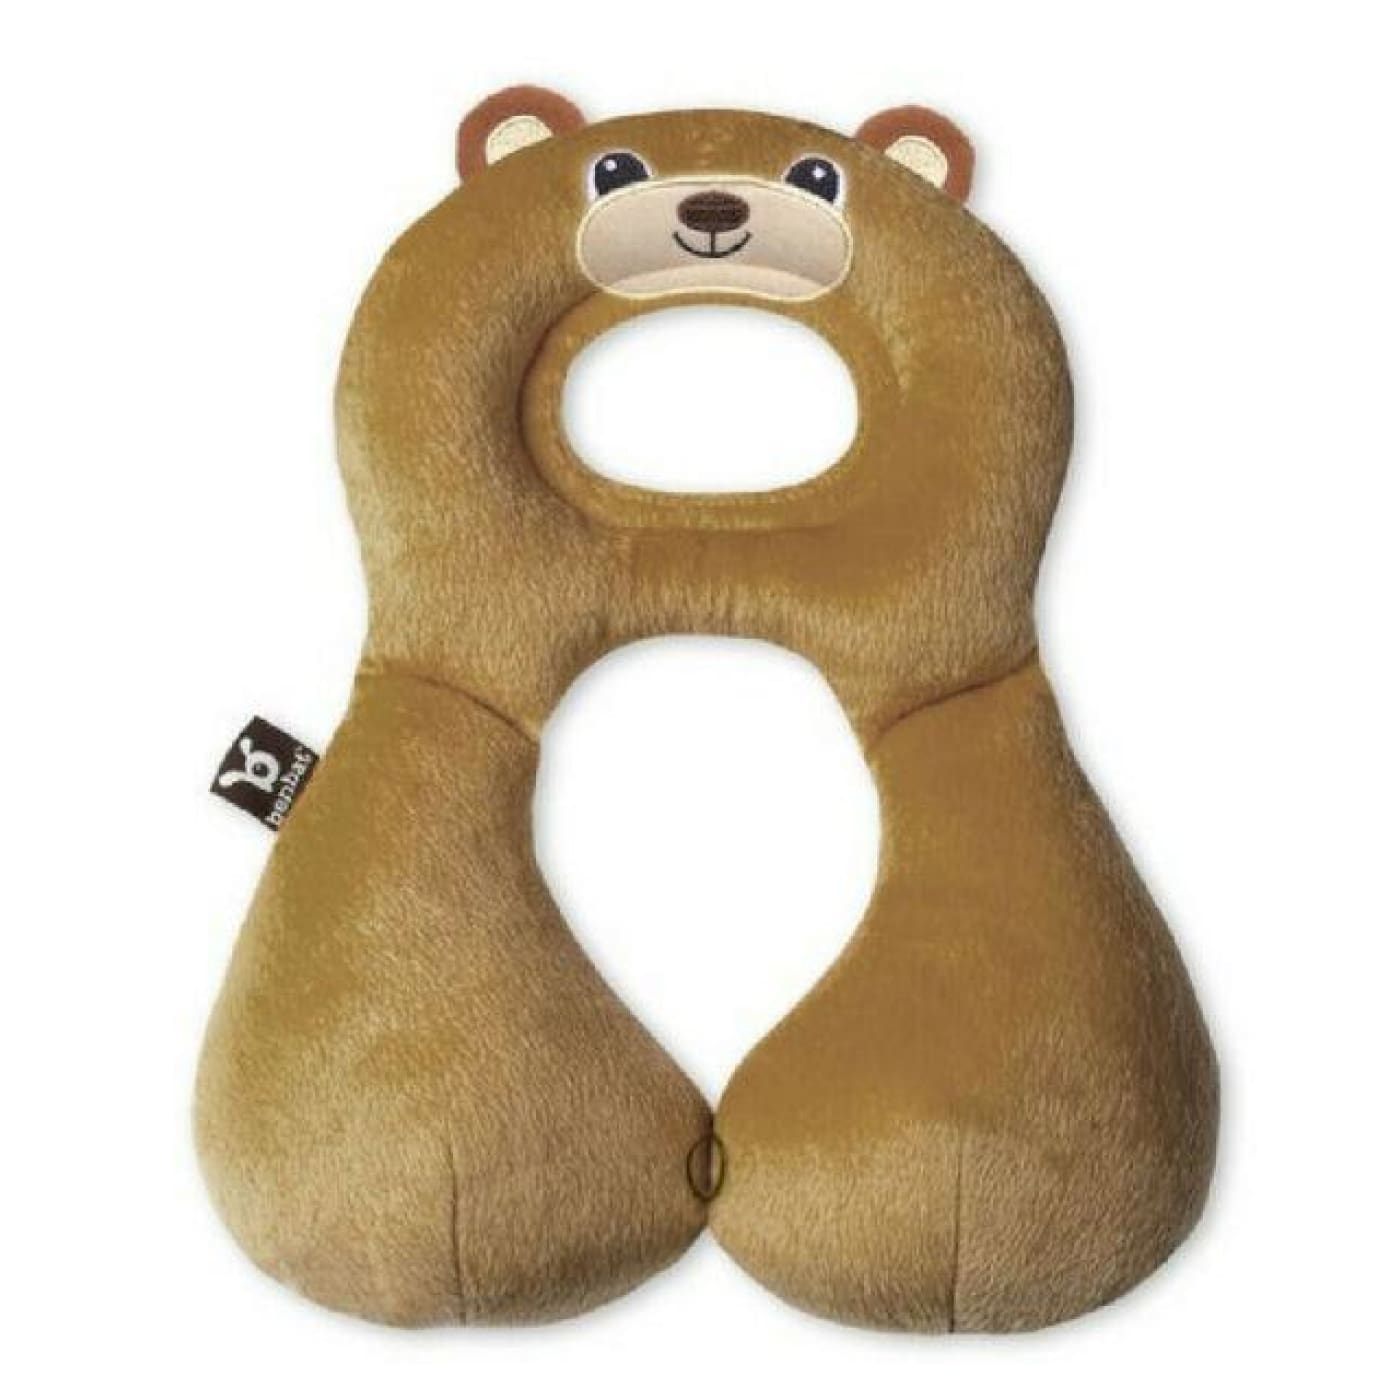 Benbat Travel Friends Head Rest - Bear 1-4YR - 1-4YRS / Bear - CAR SEATS - HEAD SUPPORTS/HARNESS COVERS